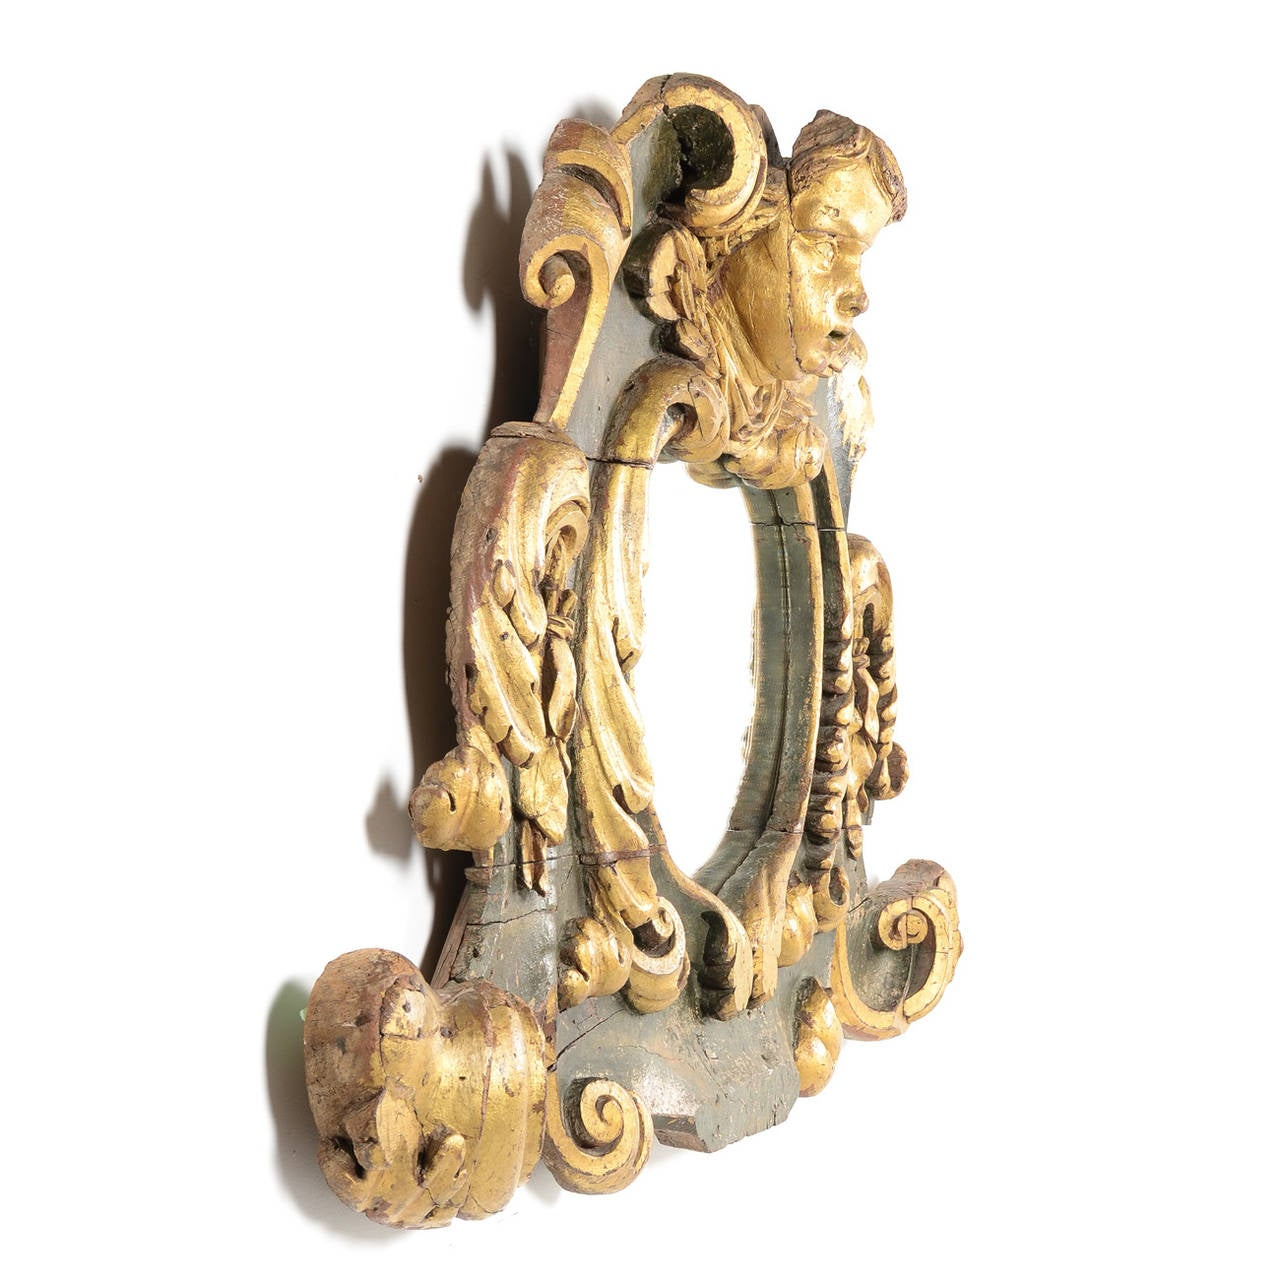 An Italian Baroque over-mantel mirror frame with cherubic figure, Circa 1680-1720. Impressive size with gilt-and-green decorative carvings. Extremely rare and in fantastic original condition with beautiful wear, patina, and age marks consistent with